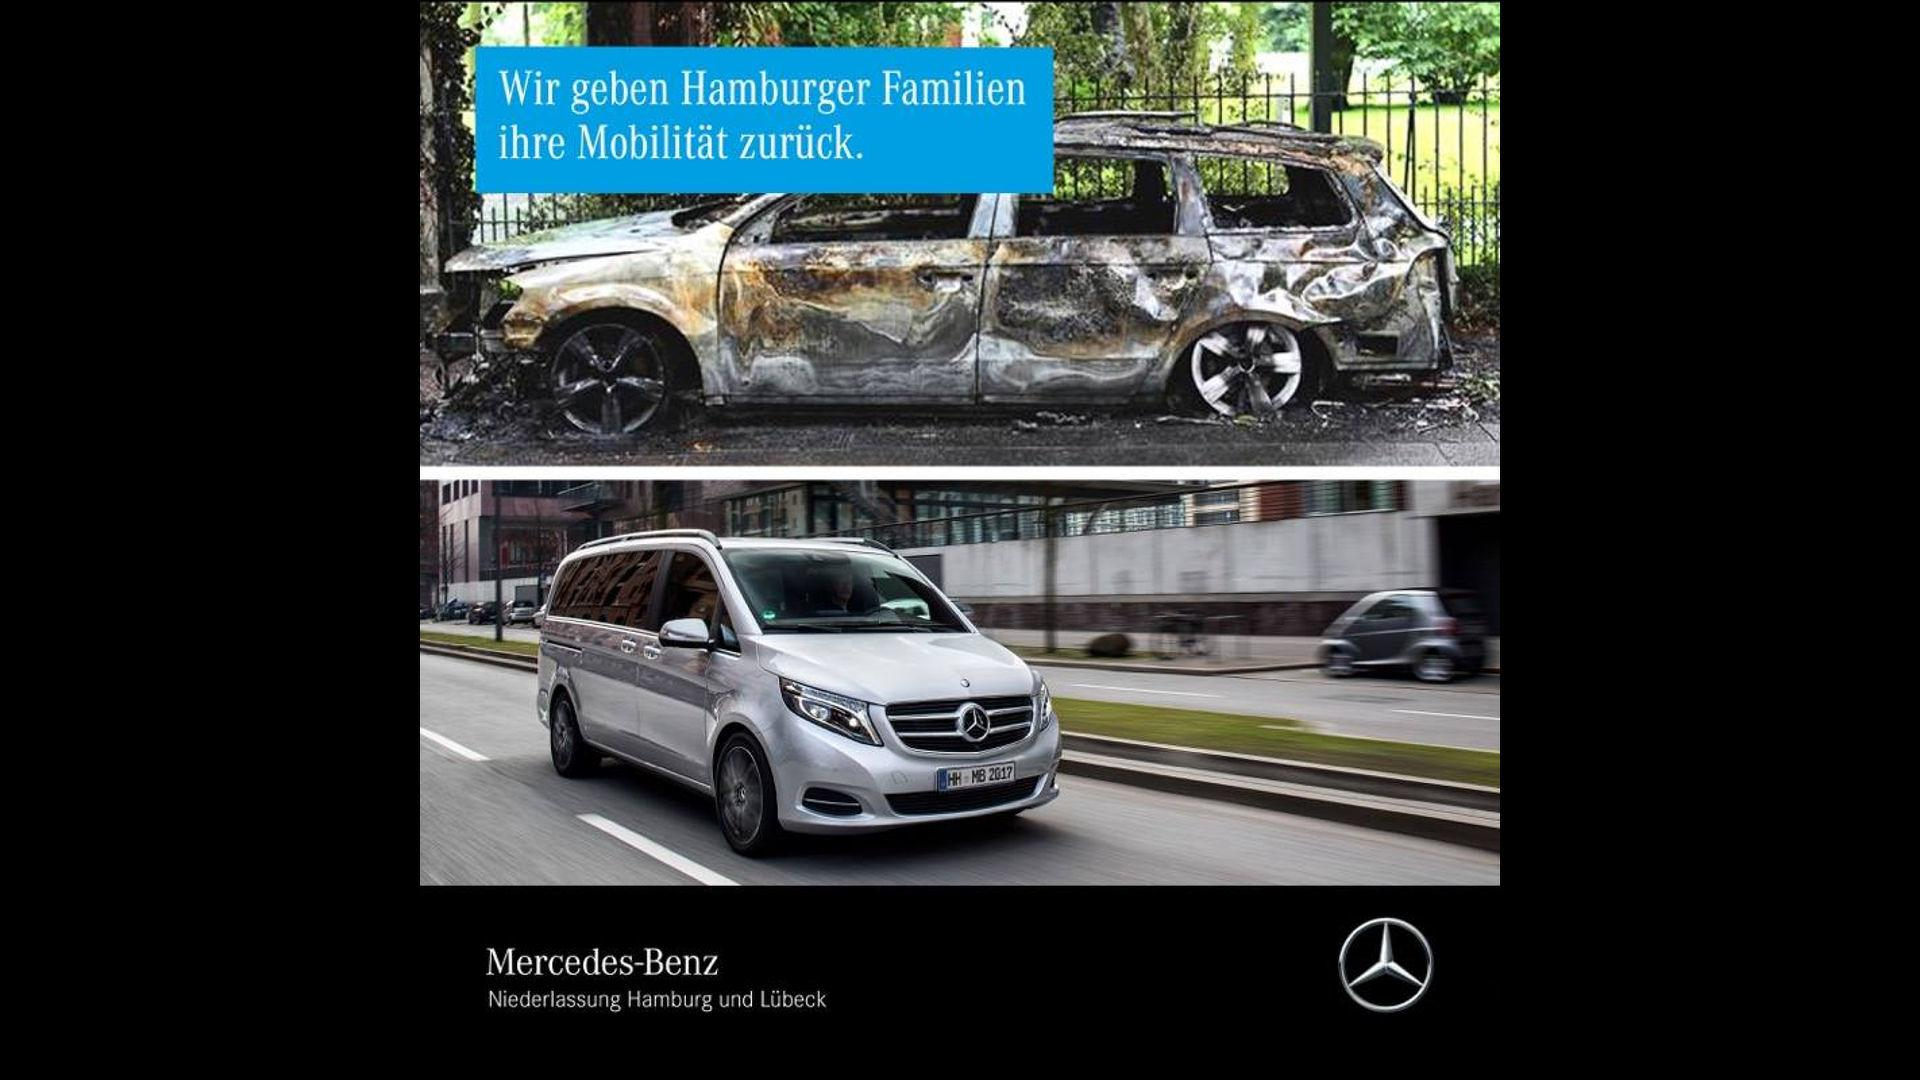 Mercedes offers vans to affected families of g20 summit for Mercedes benz offers usa